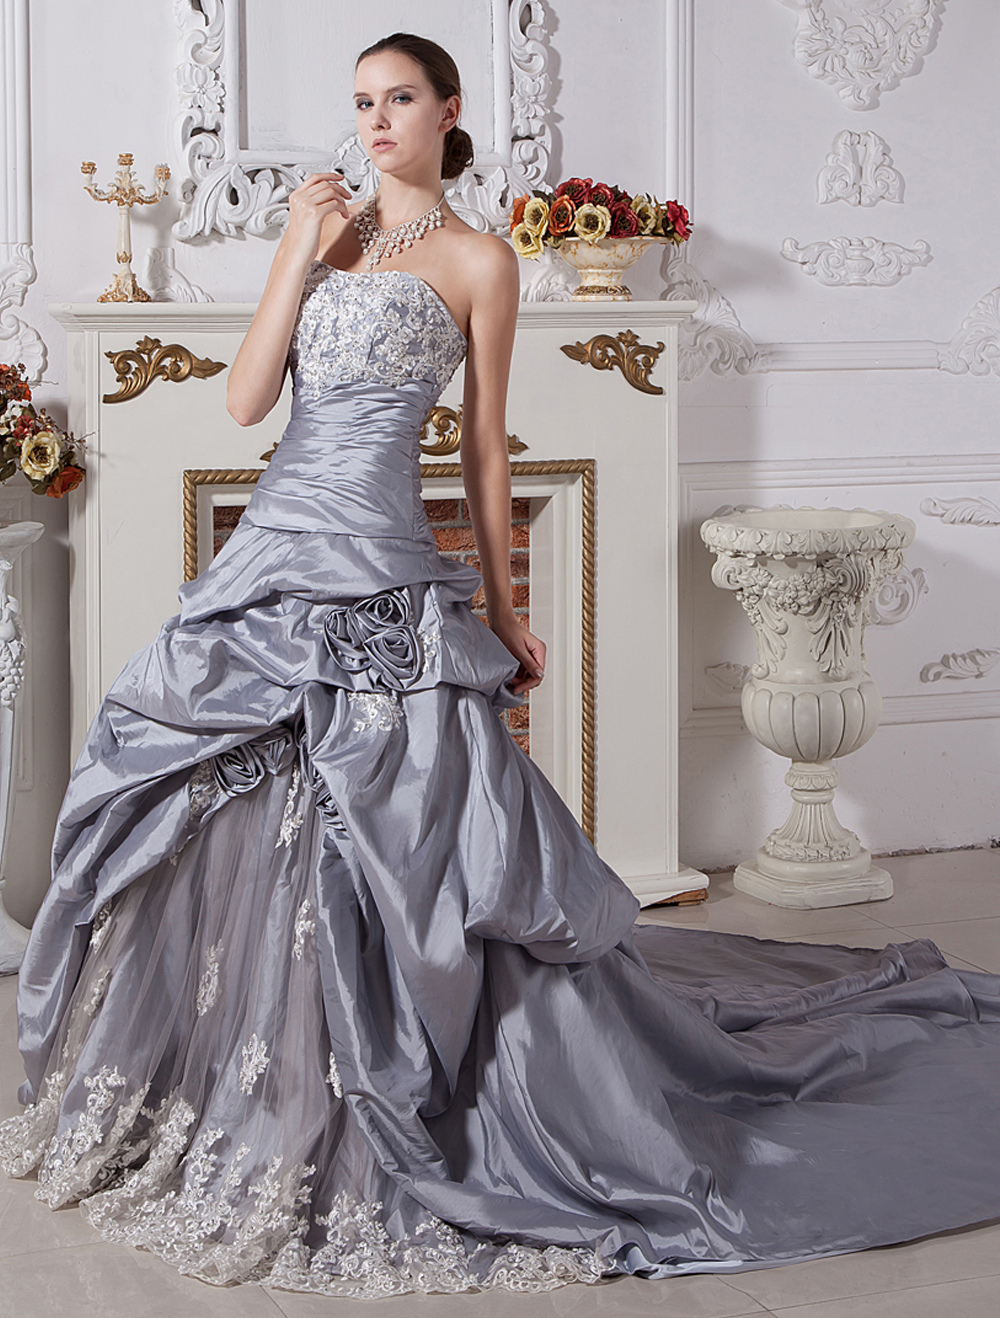 Wedding Dresses Ball Gown Strapless Bridal Dress Silver Taffeta Lace Beading Ruched Dropped Waist Court Train Bridal Gown